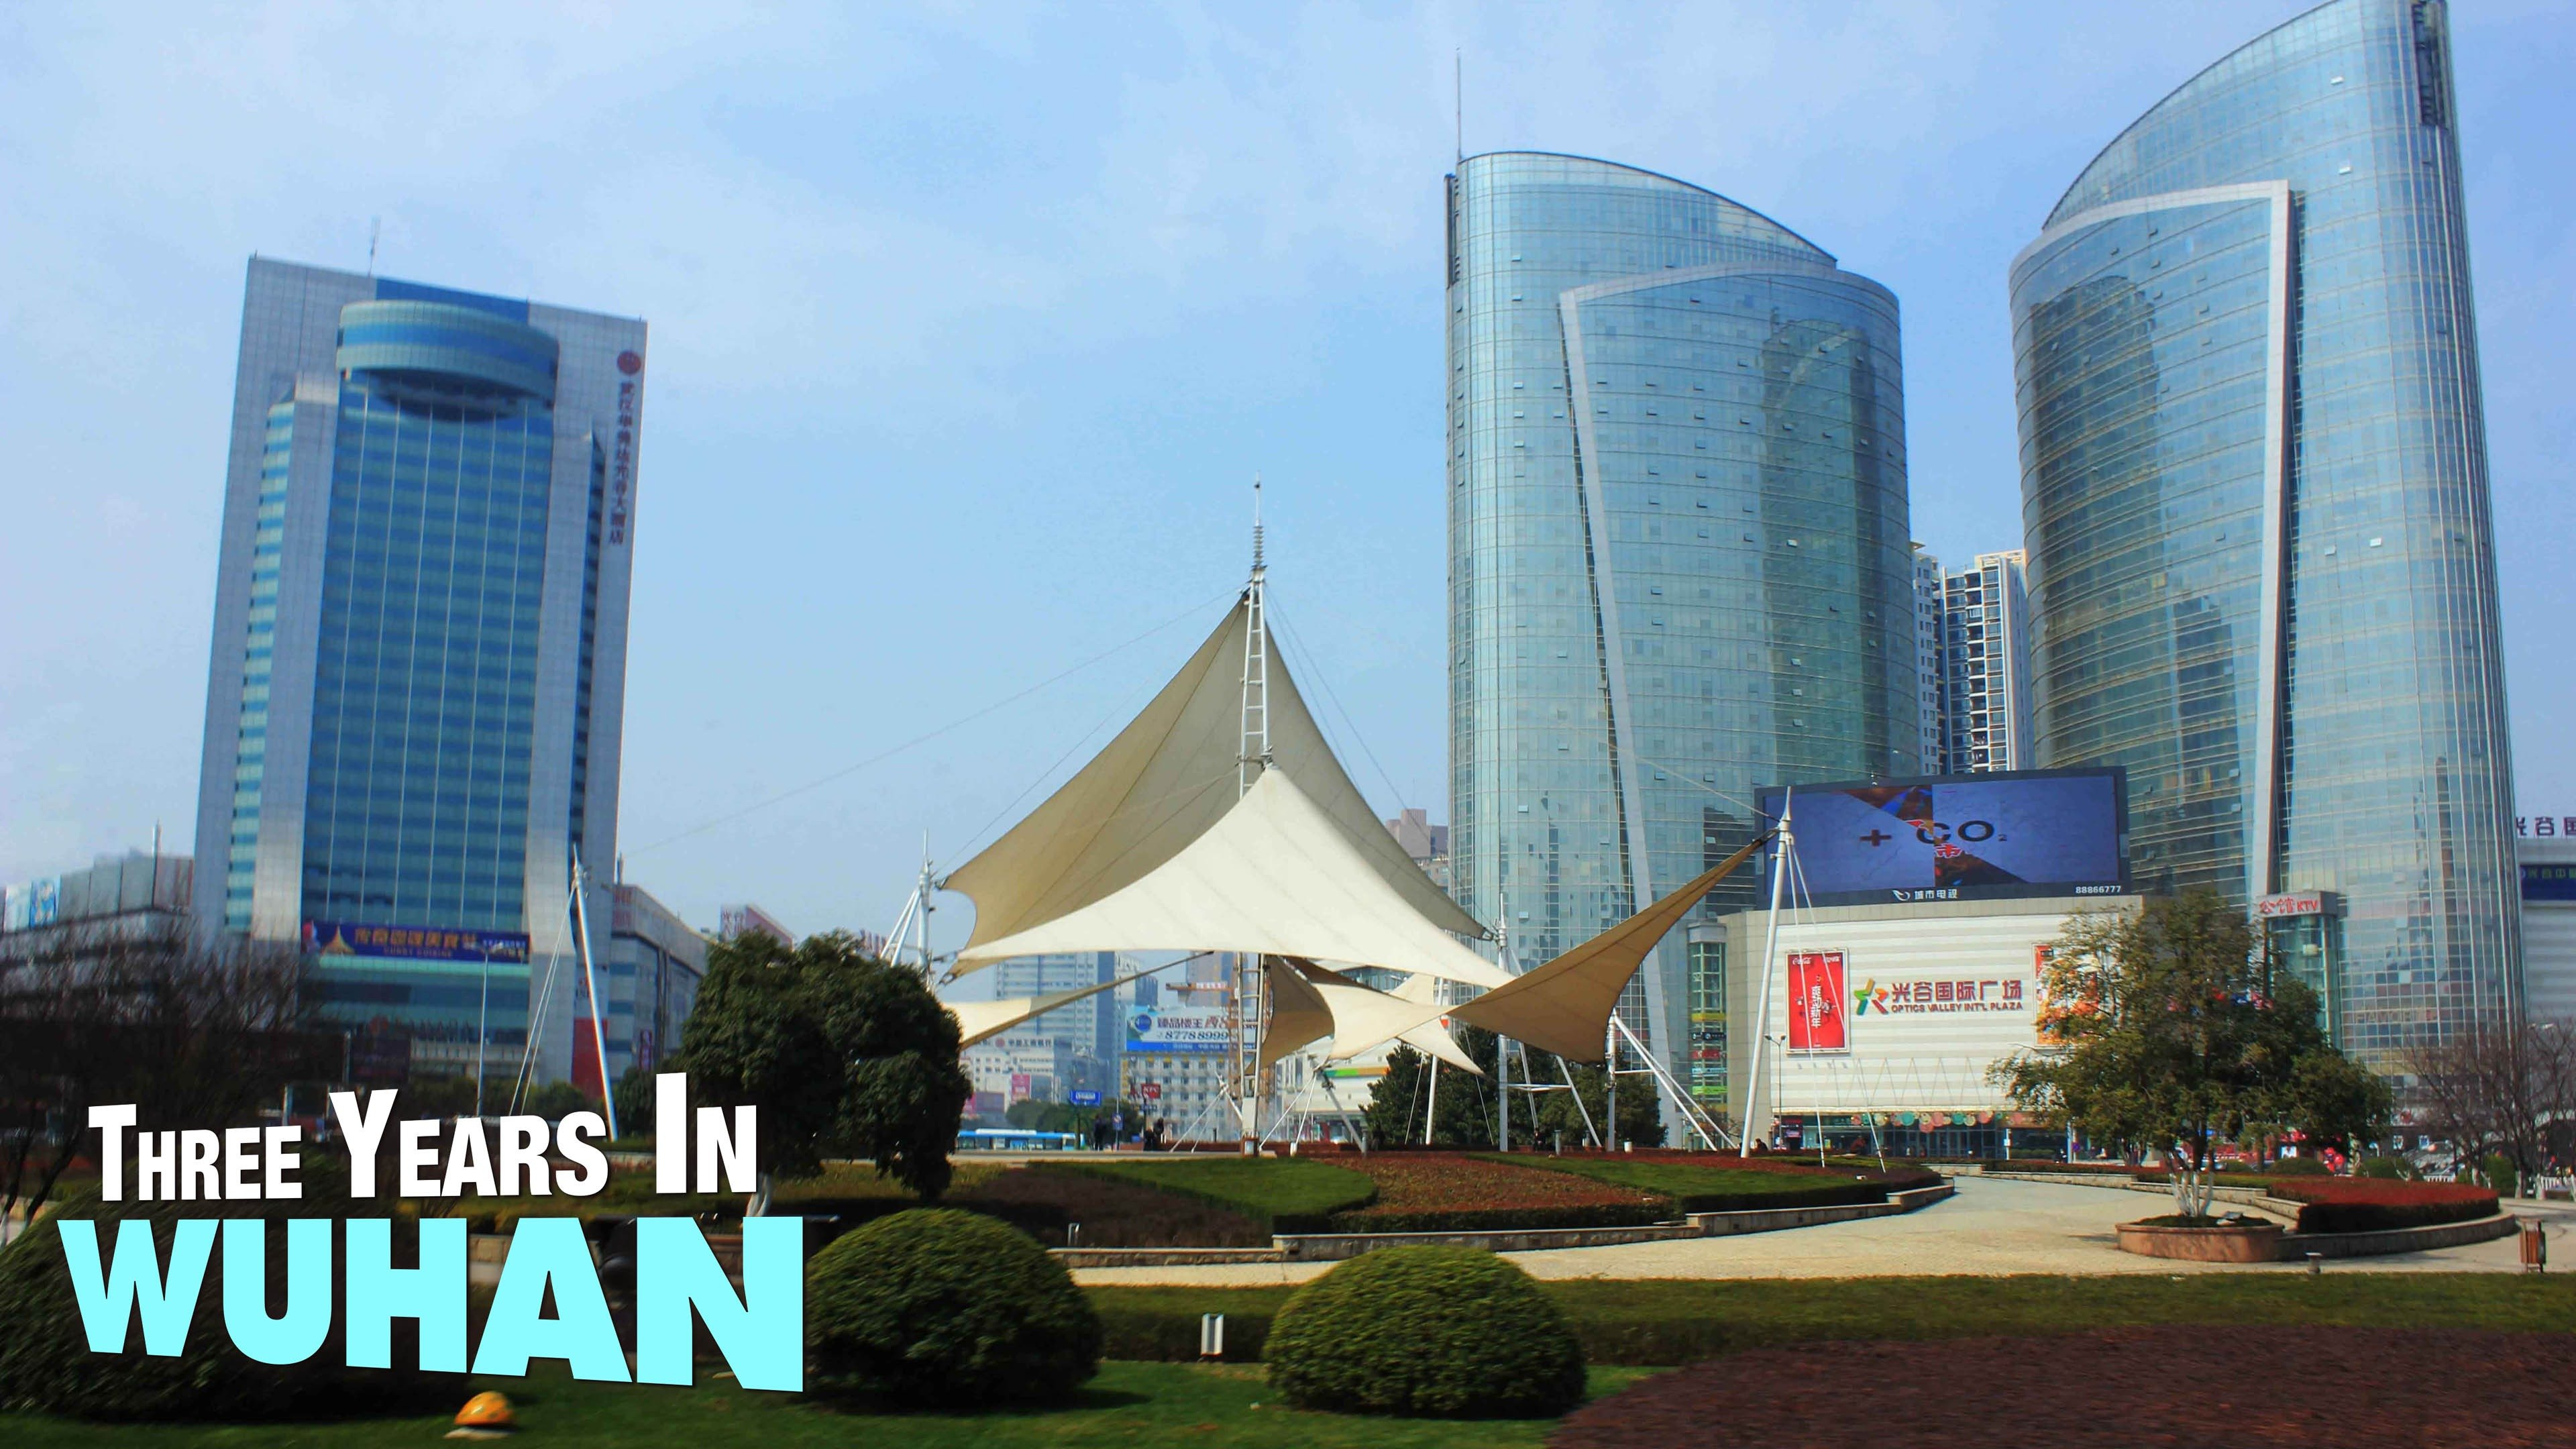 Three Years In Wuhan